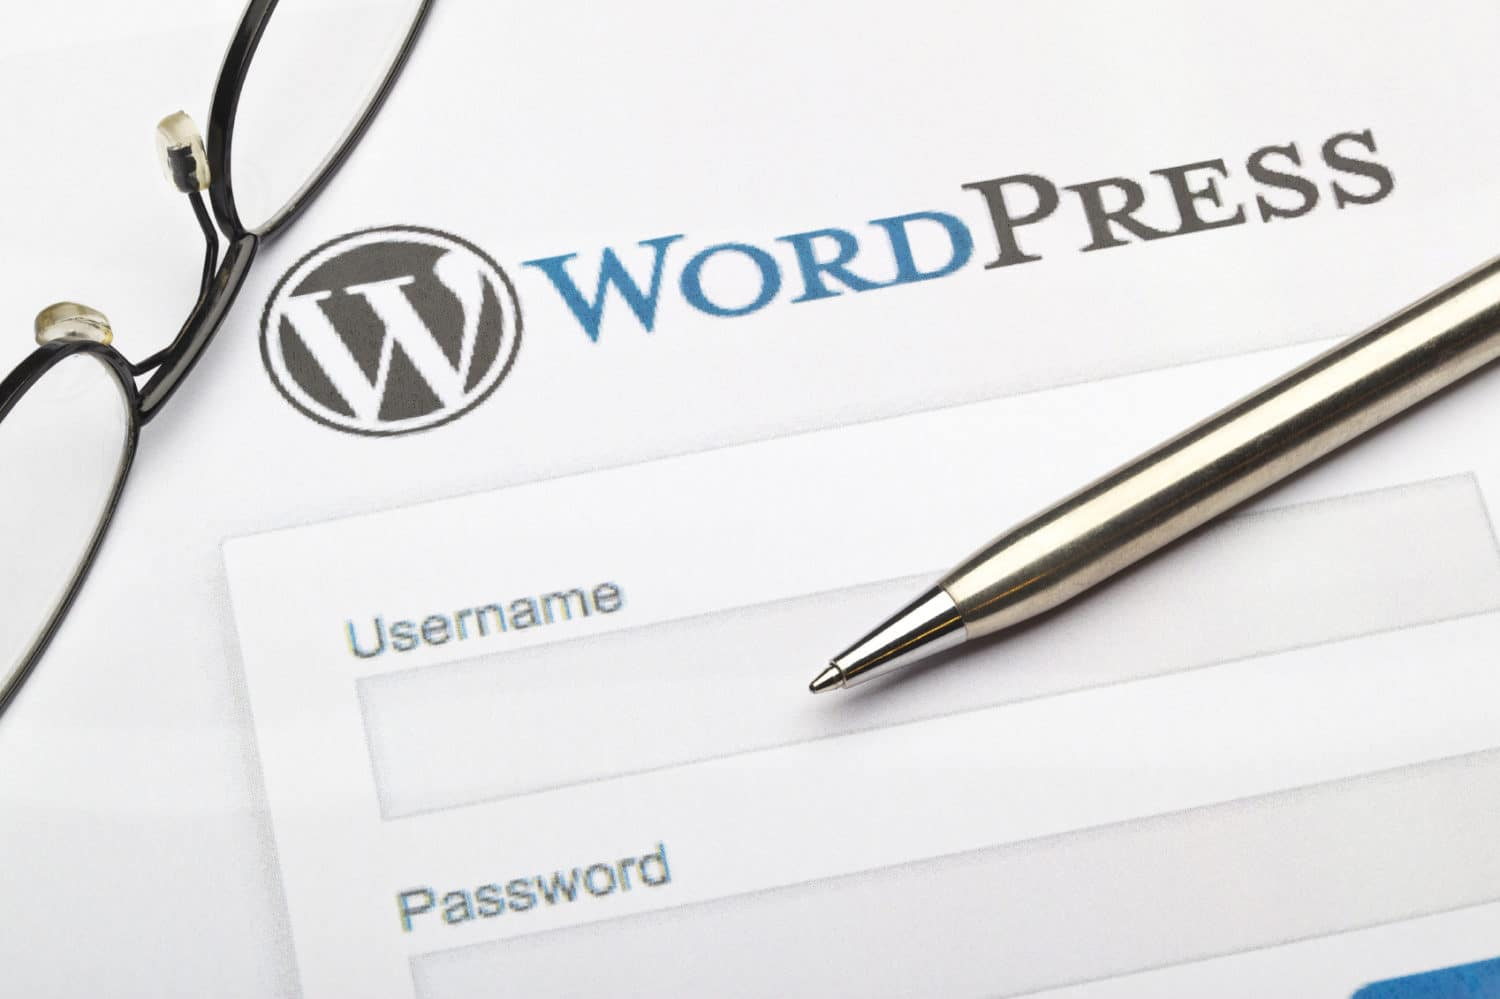 Digital marketing and Wordpress image example with pen and screen showing.